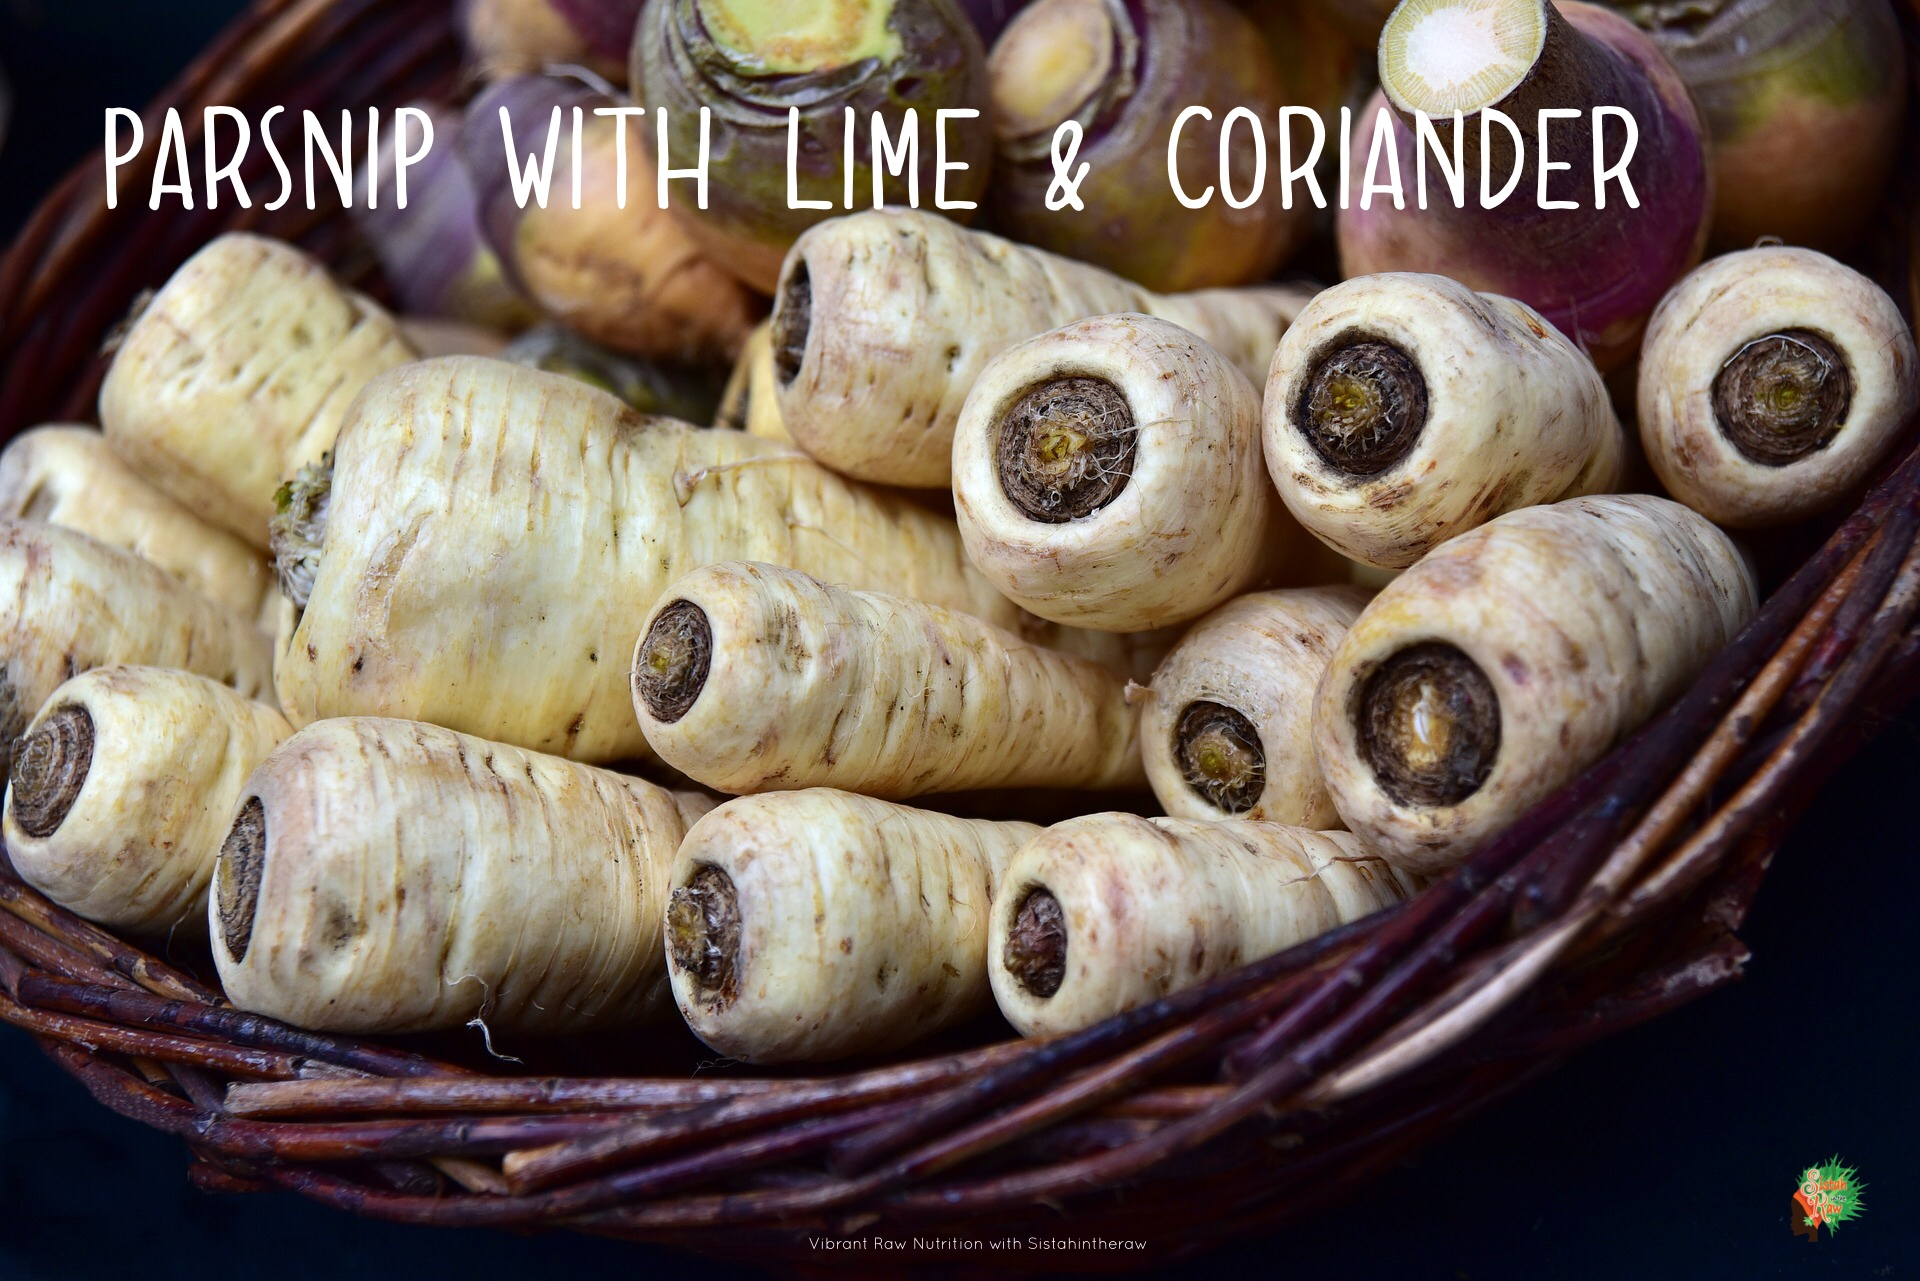 Parsnips are a sweet, juicy root vegetable